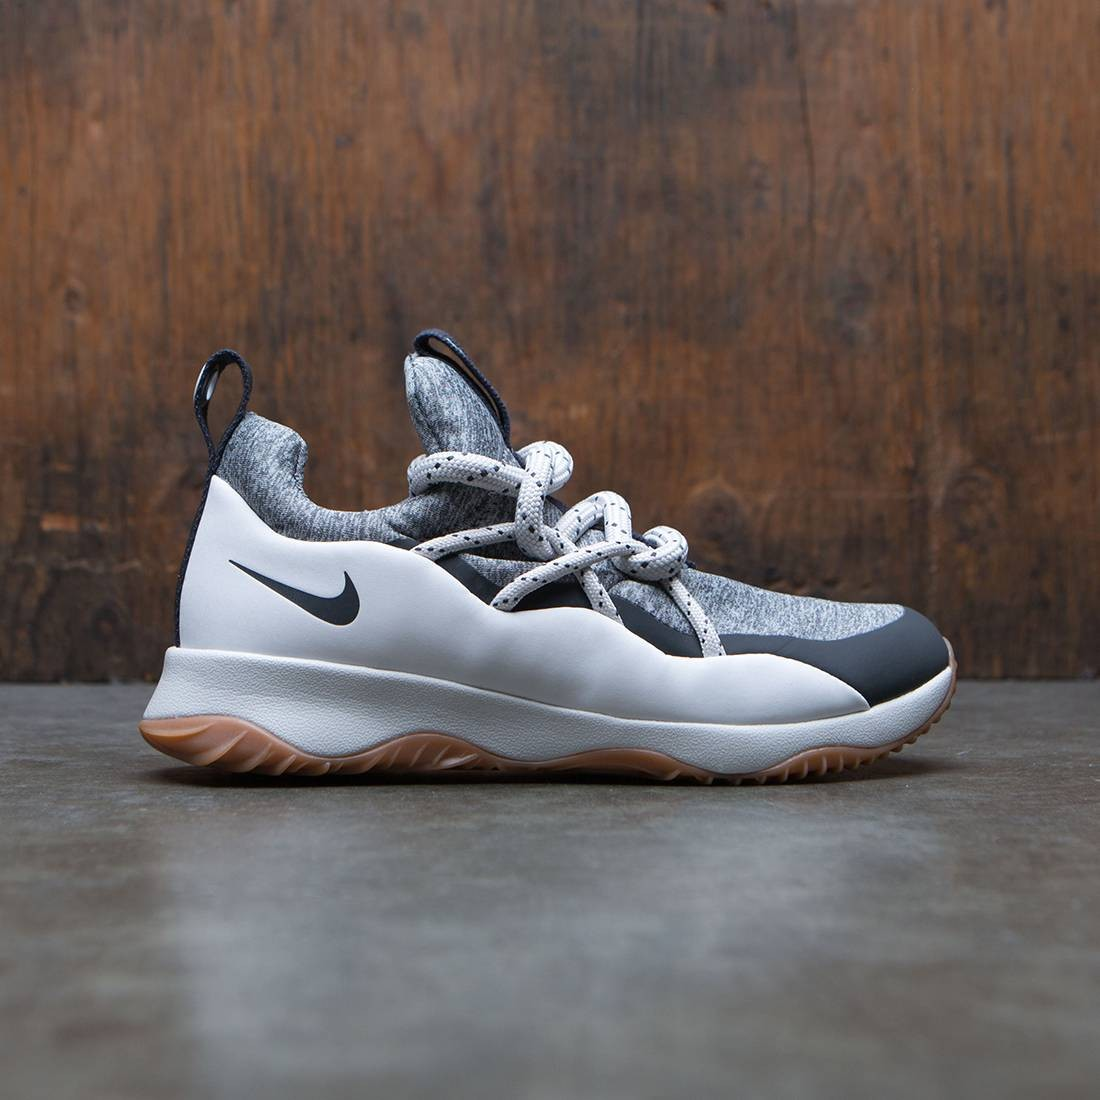 c1f02a21ebc422 nike women city loop summit white anthracite cool grey